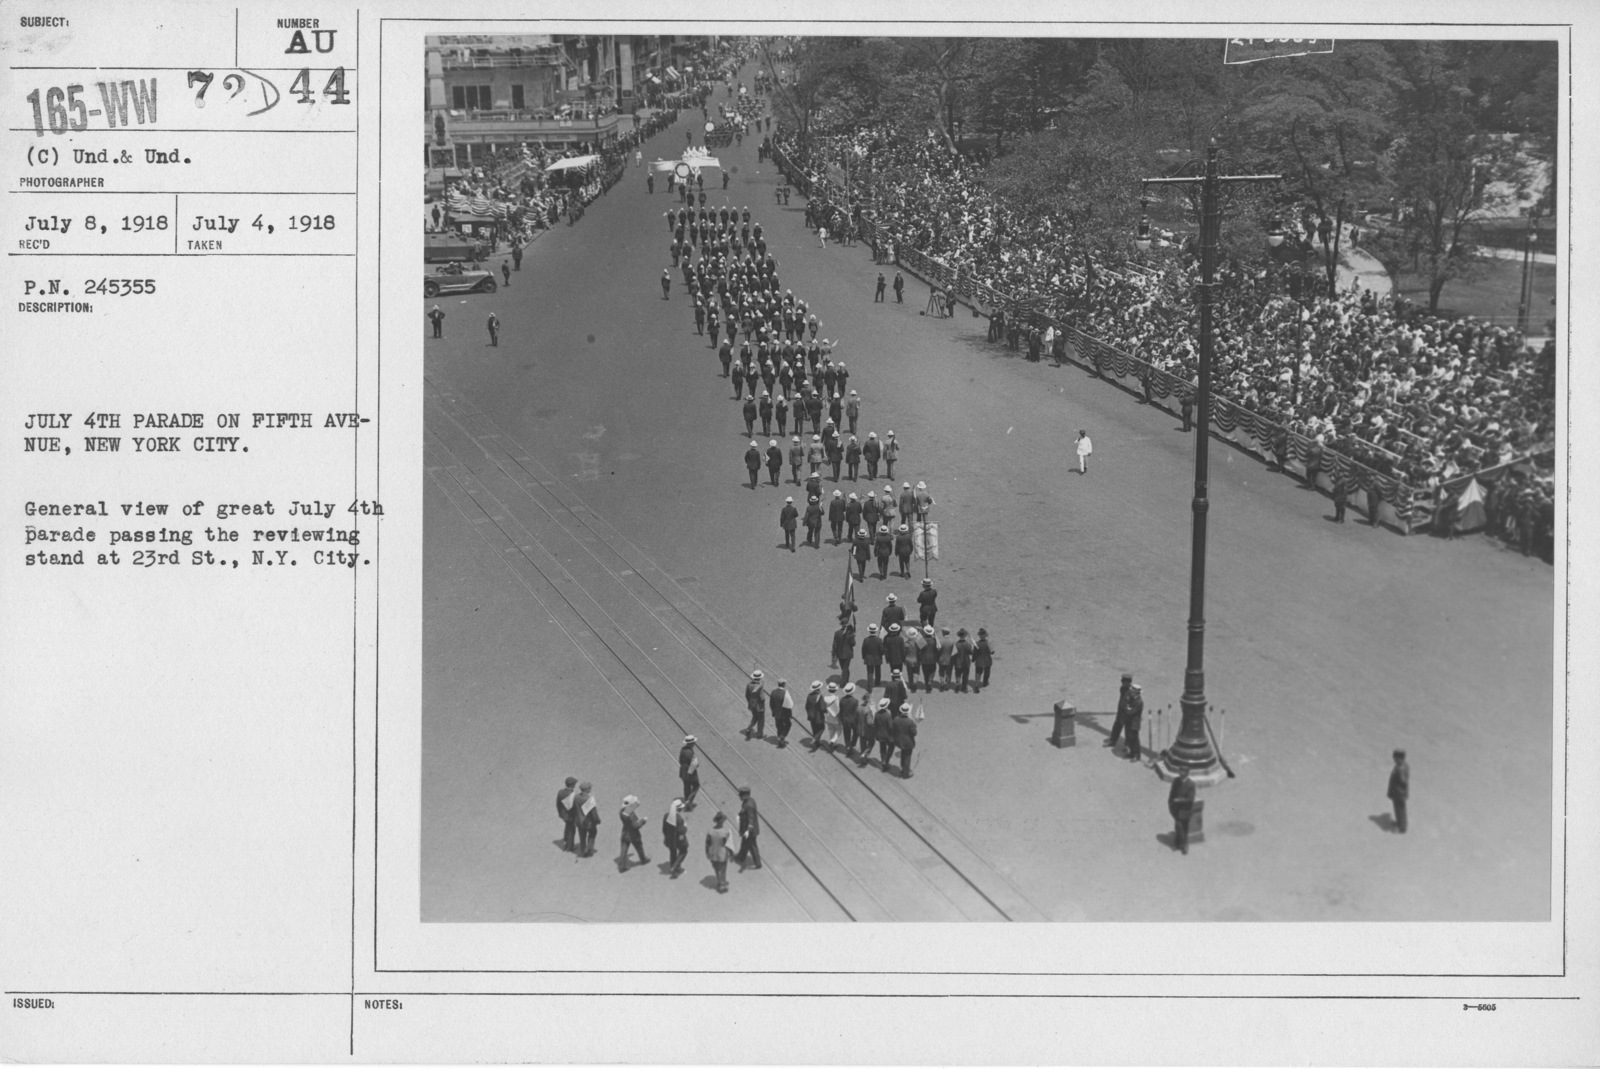 Ceremonies - Independence Day, 1918 - July 4th Parade on Fifth Avenue, New York City. General view of great July 4th parade passing the reviewing stand at 23rd St., N.Y. City